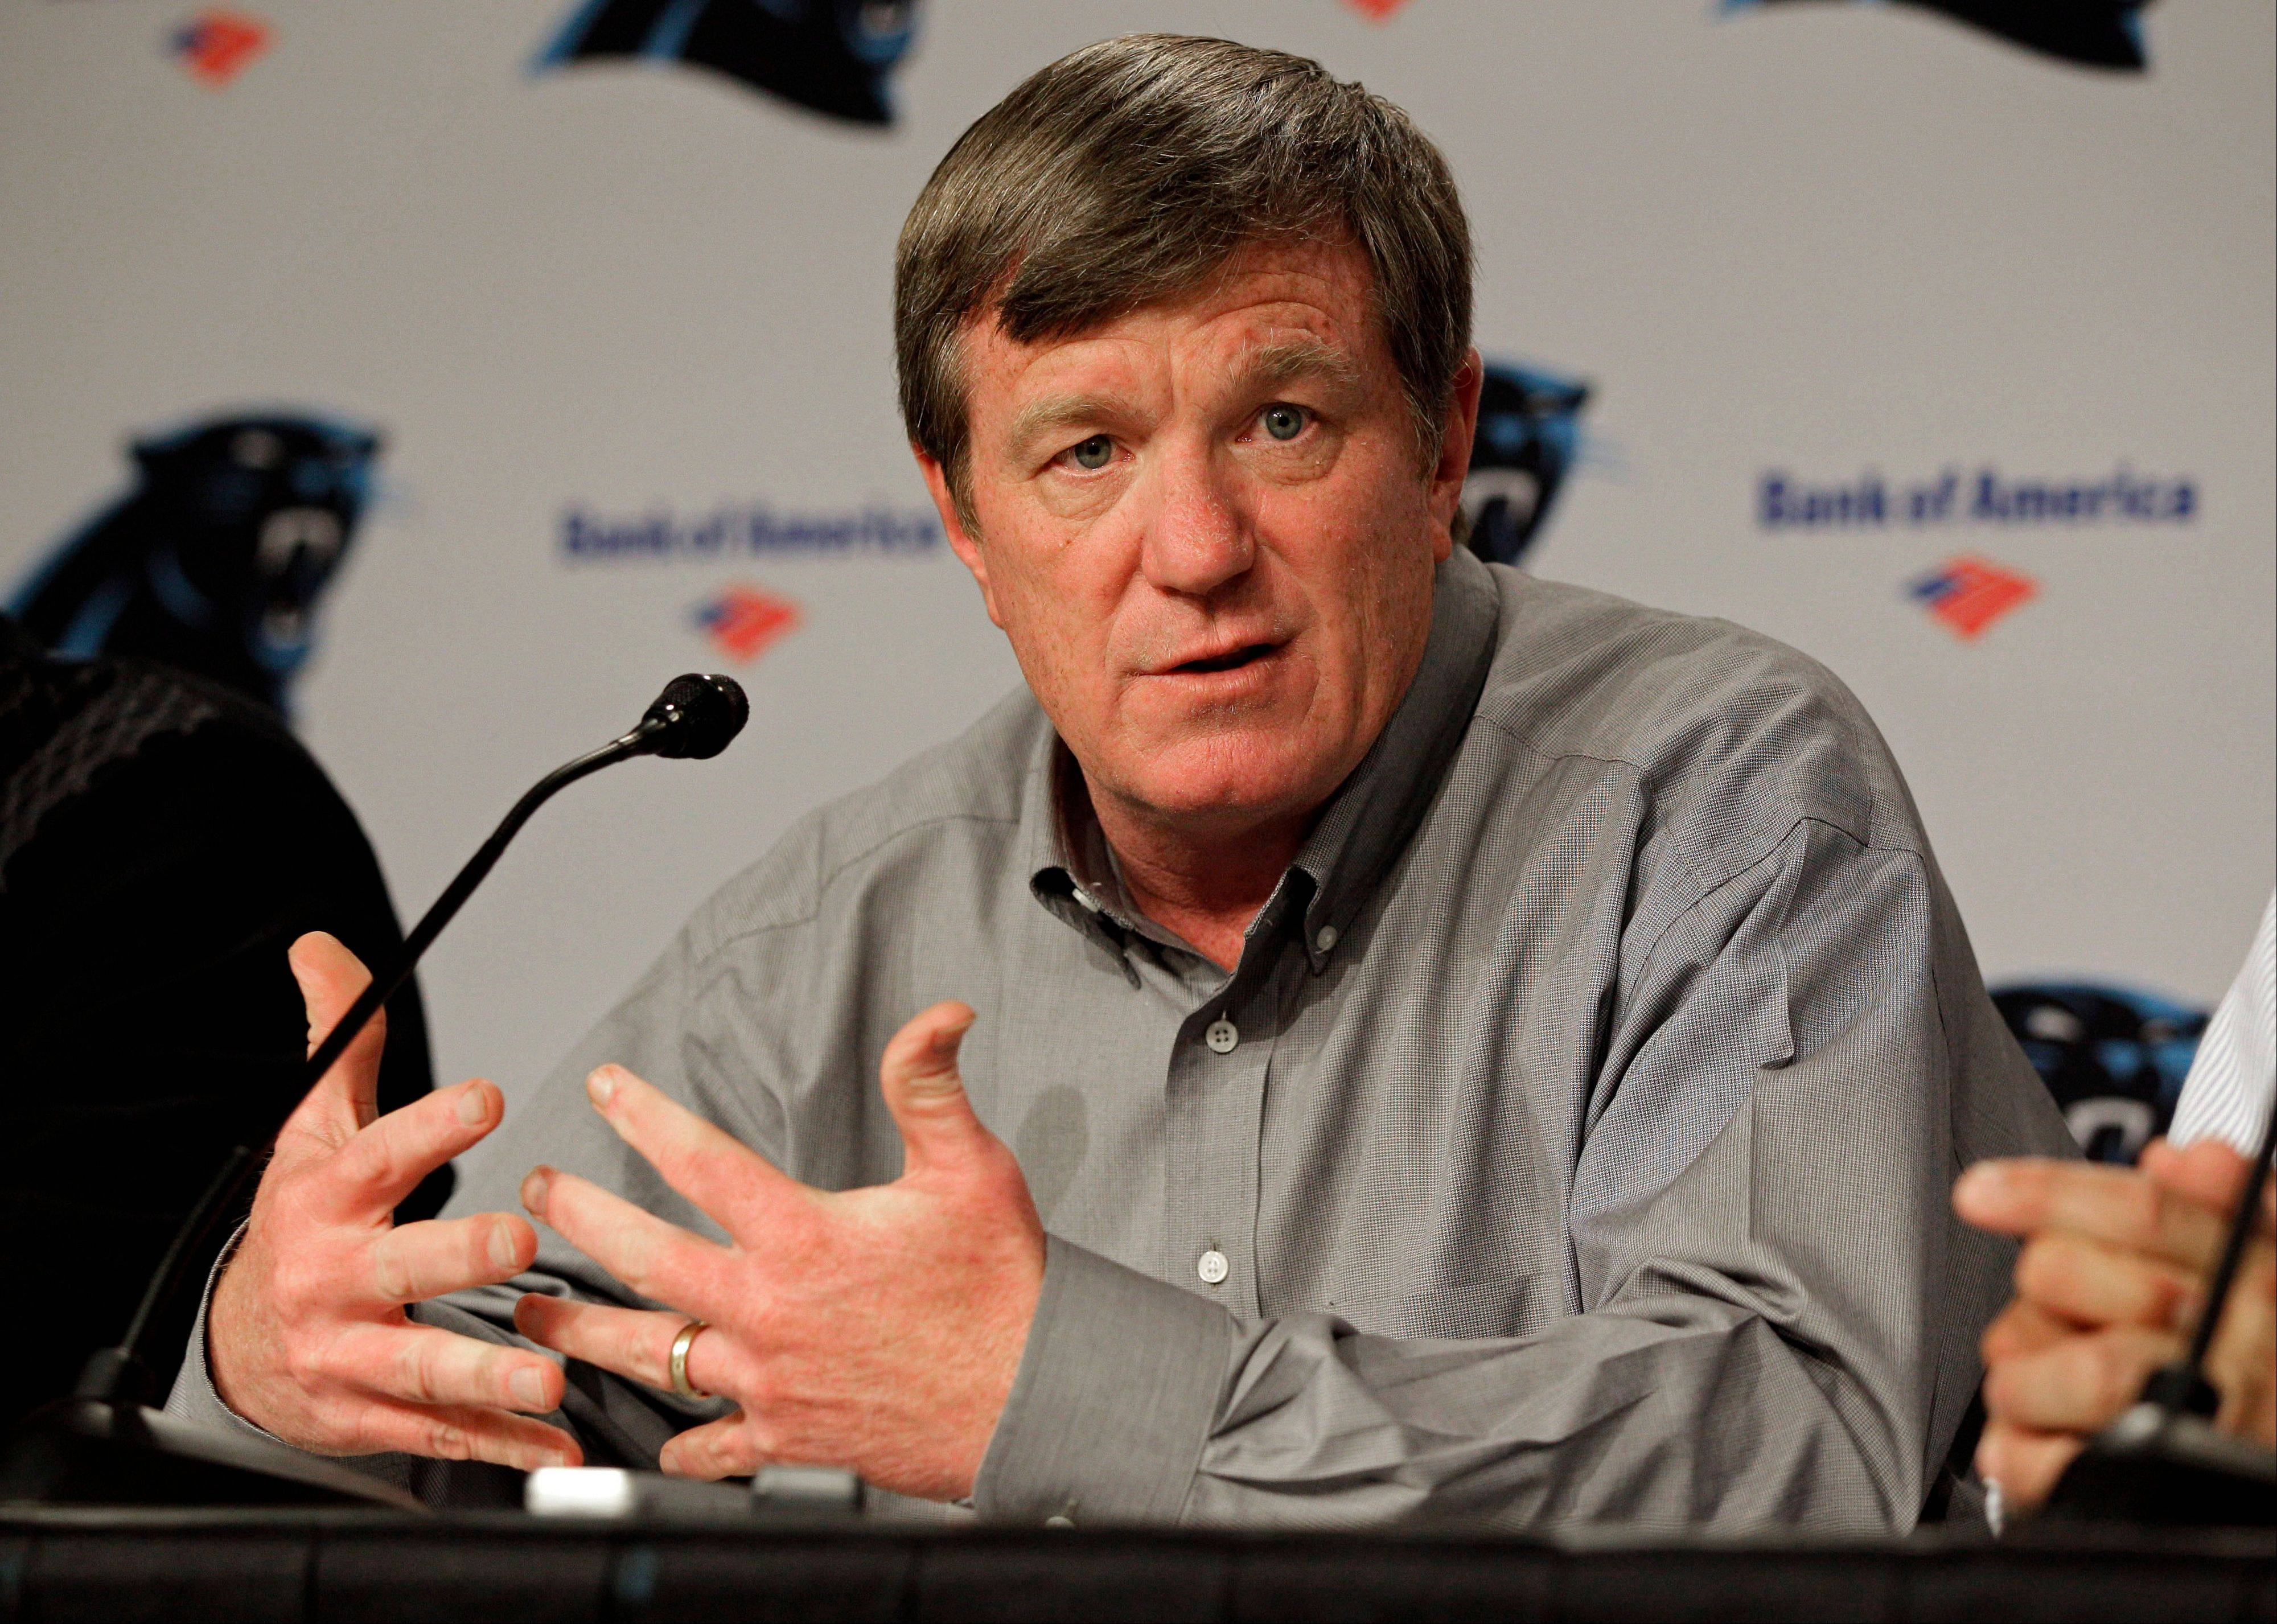 Carolina Panthers general manager Marty Hurney was fired Monday. The NFL club is 1-5 this season.